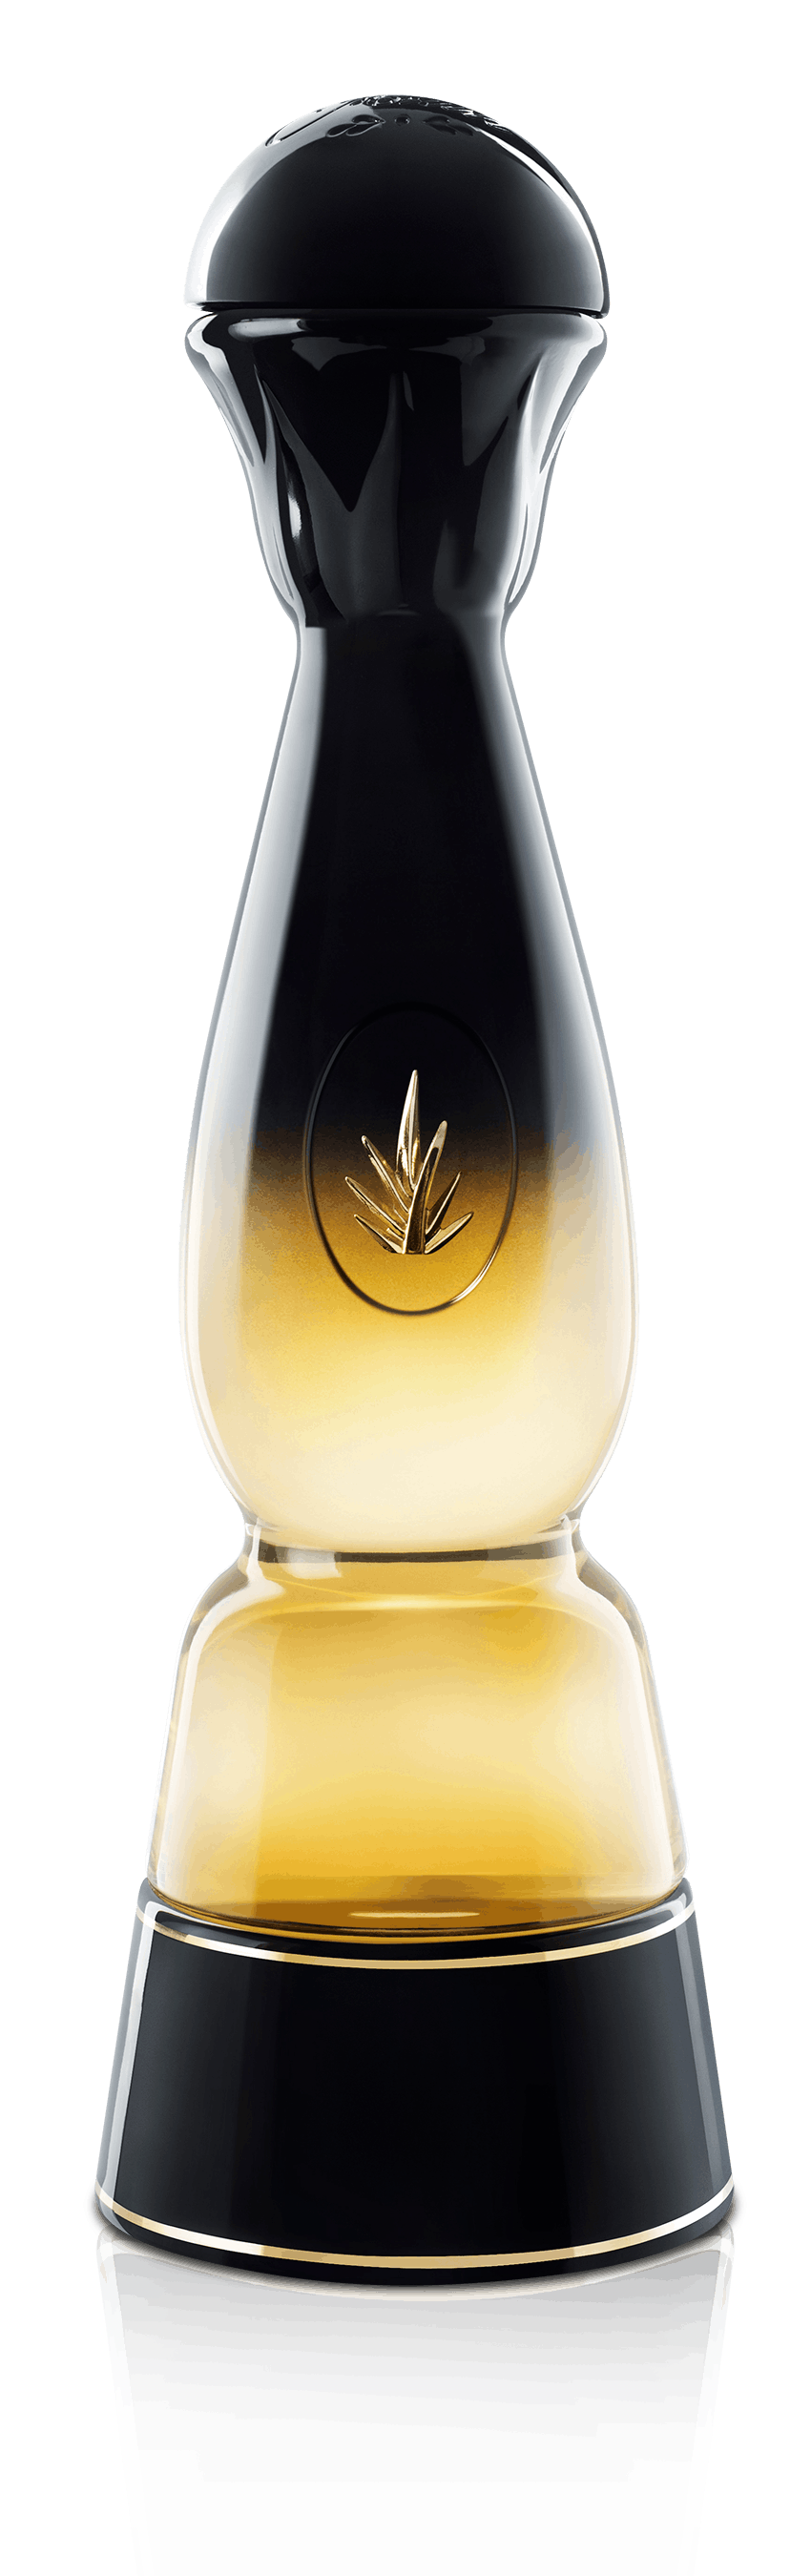 Clase Azul Gold tequila